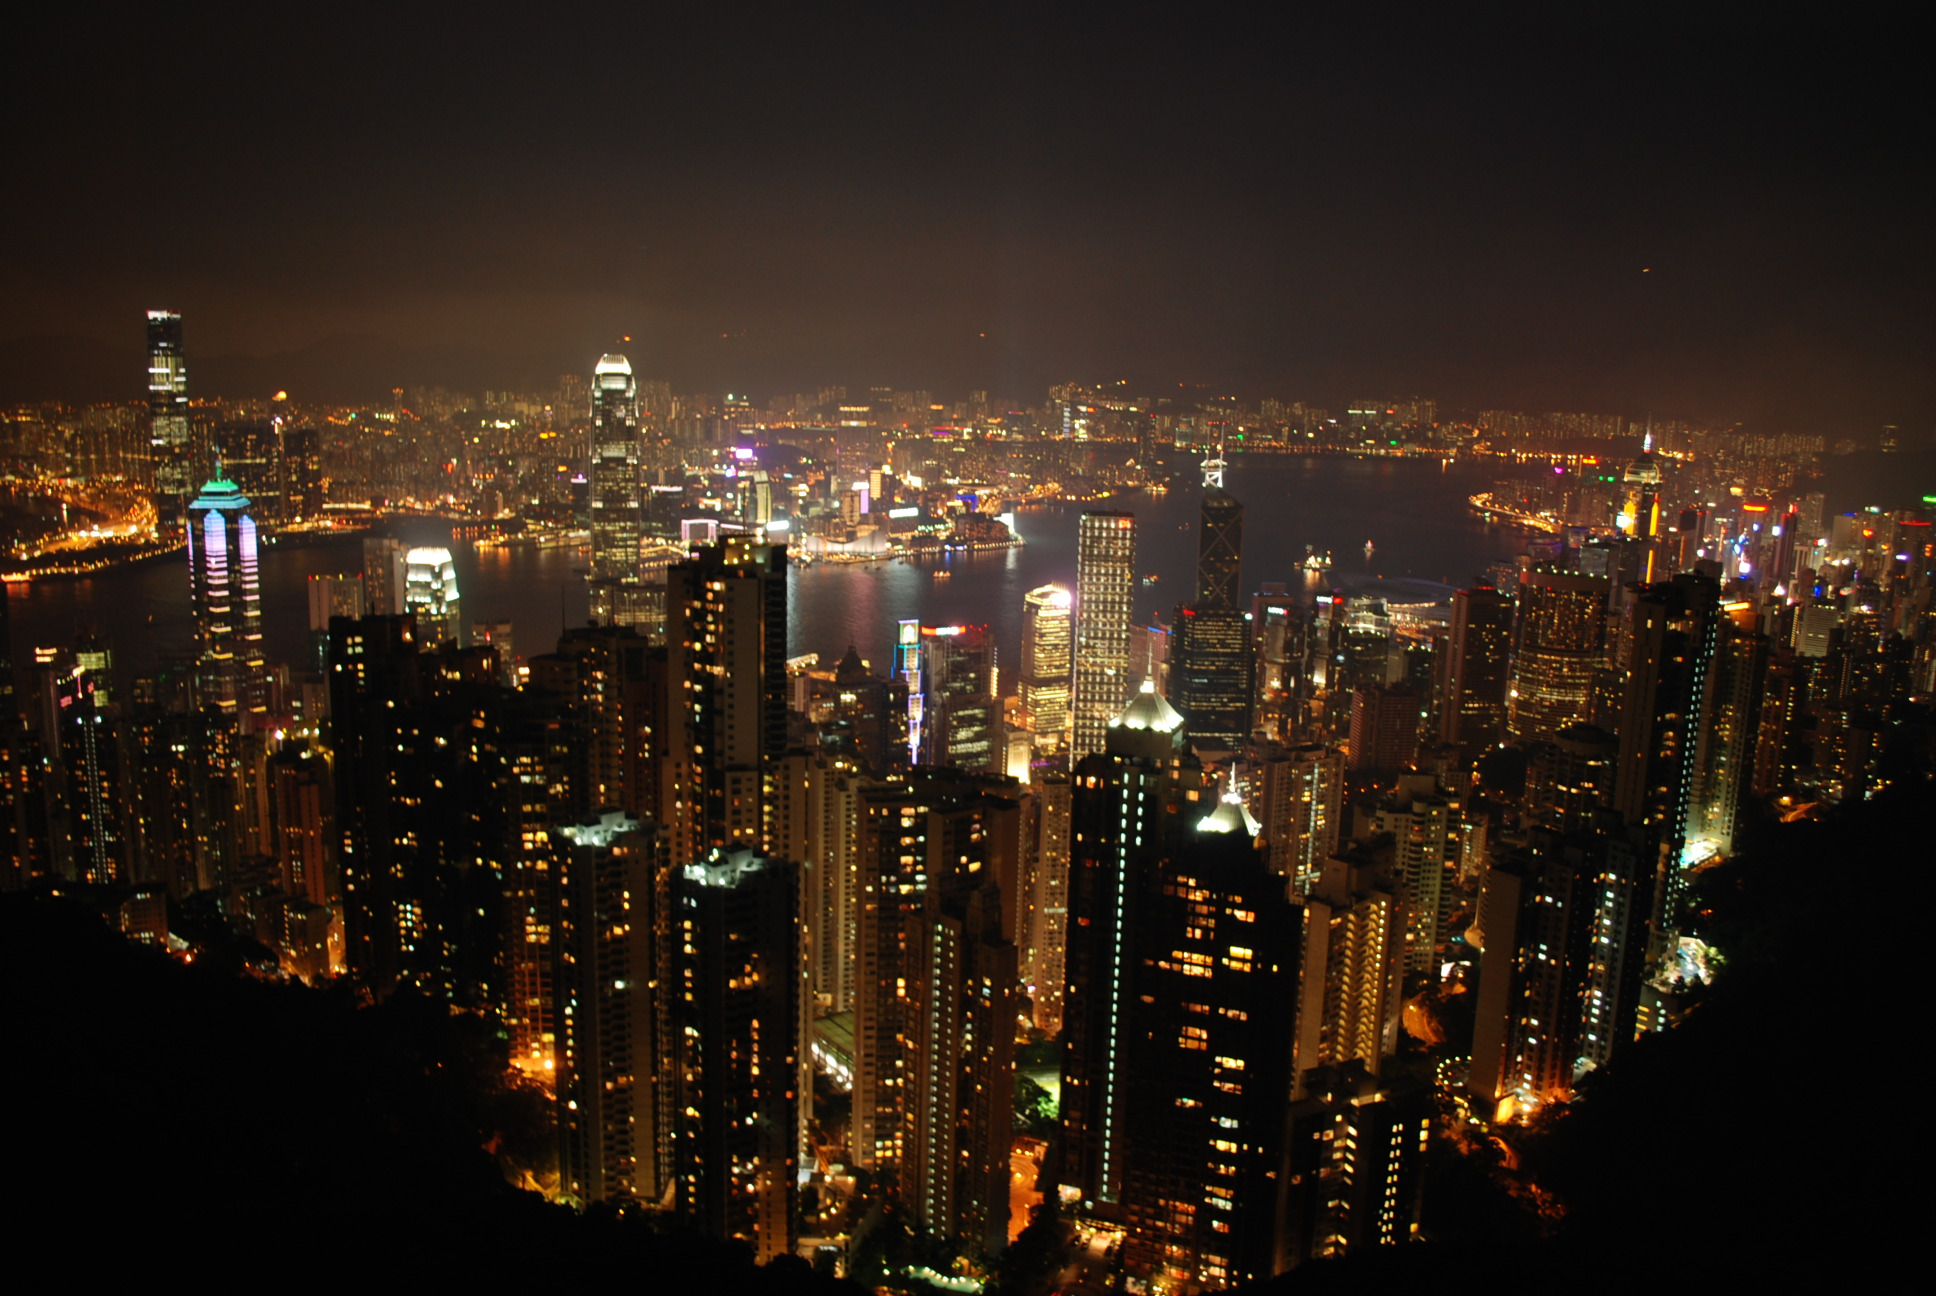 Hong Kong's skyline at night (Photo: Simon Roughneen)